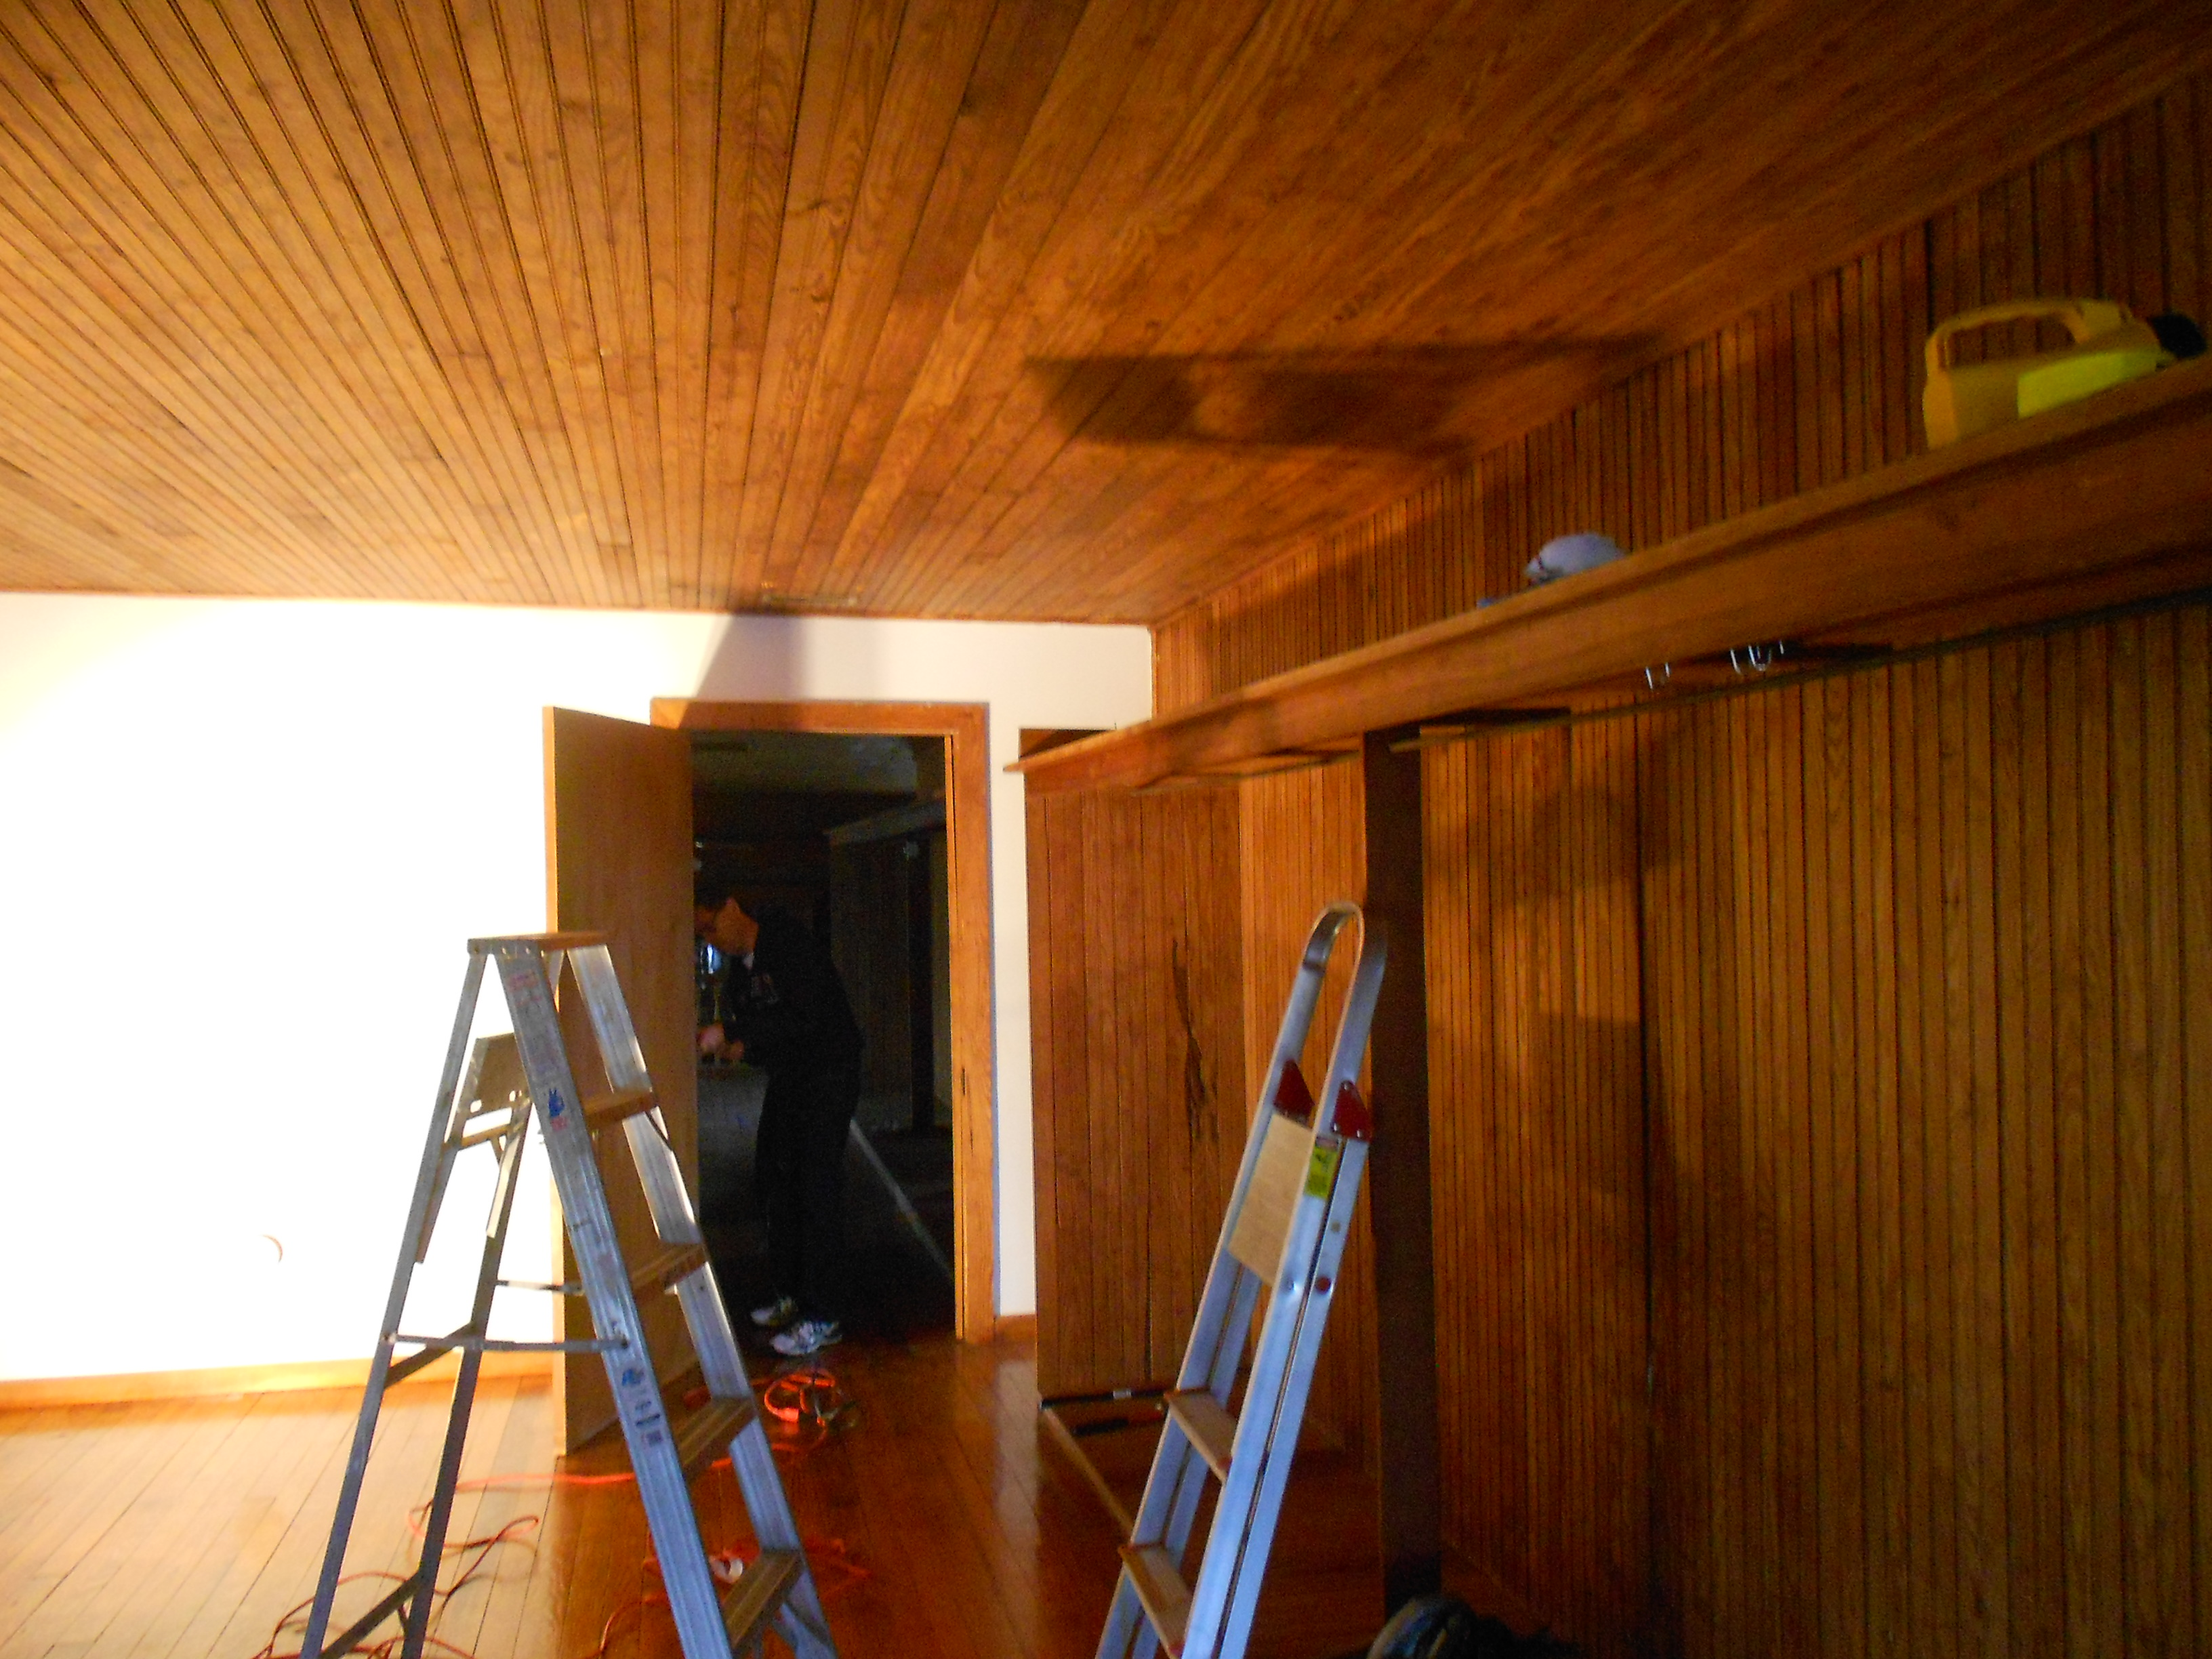 Before we remove the old drywall